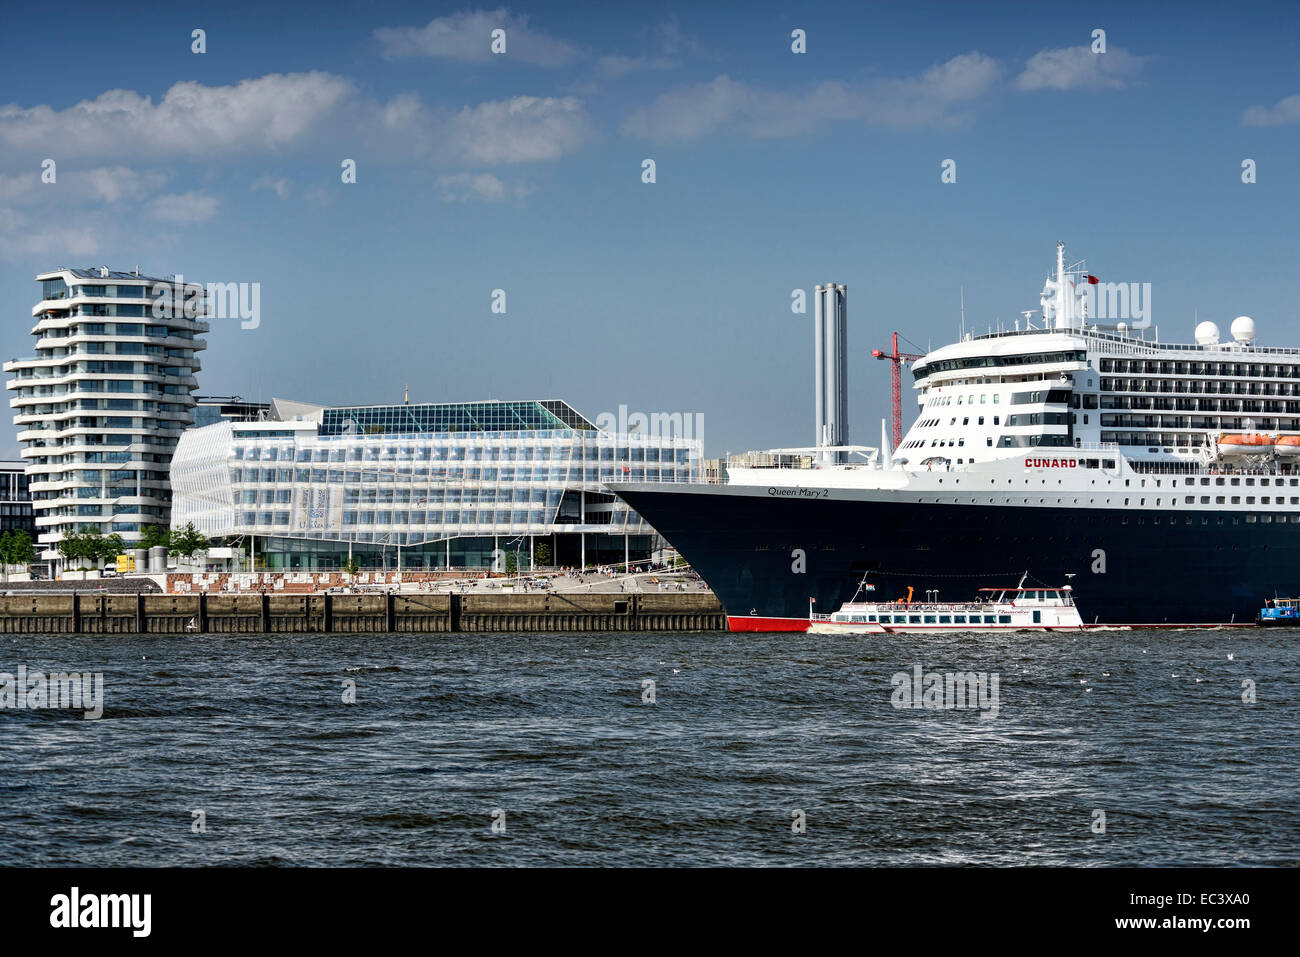 Cruise ship Queen Mary 2 in Hamburg harbour, Germany - Stock Image